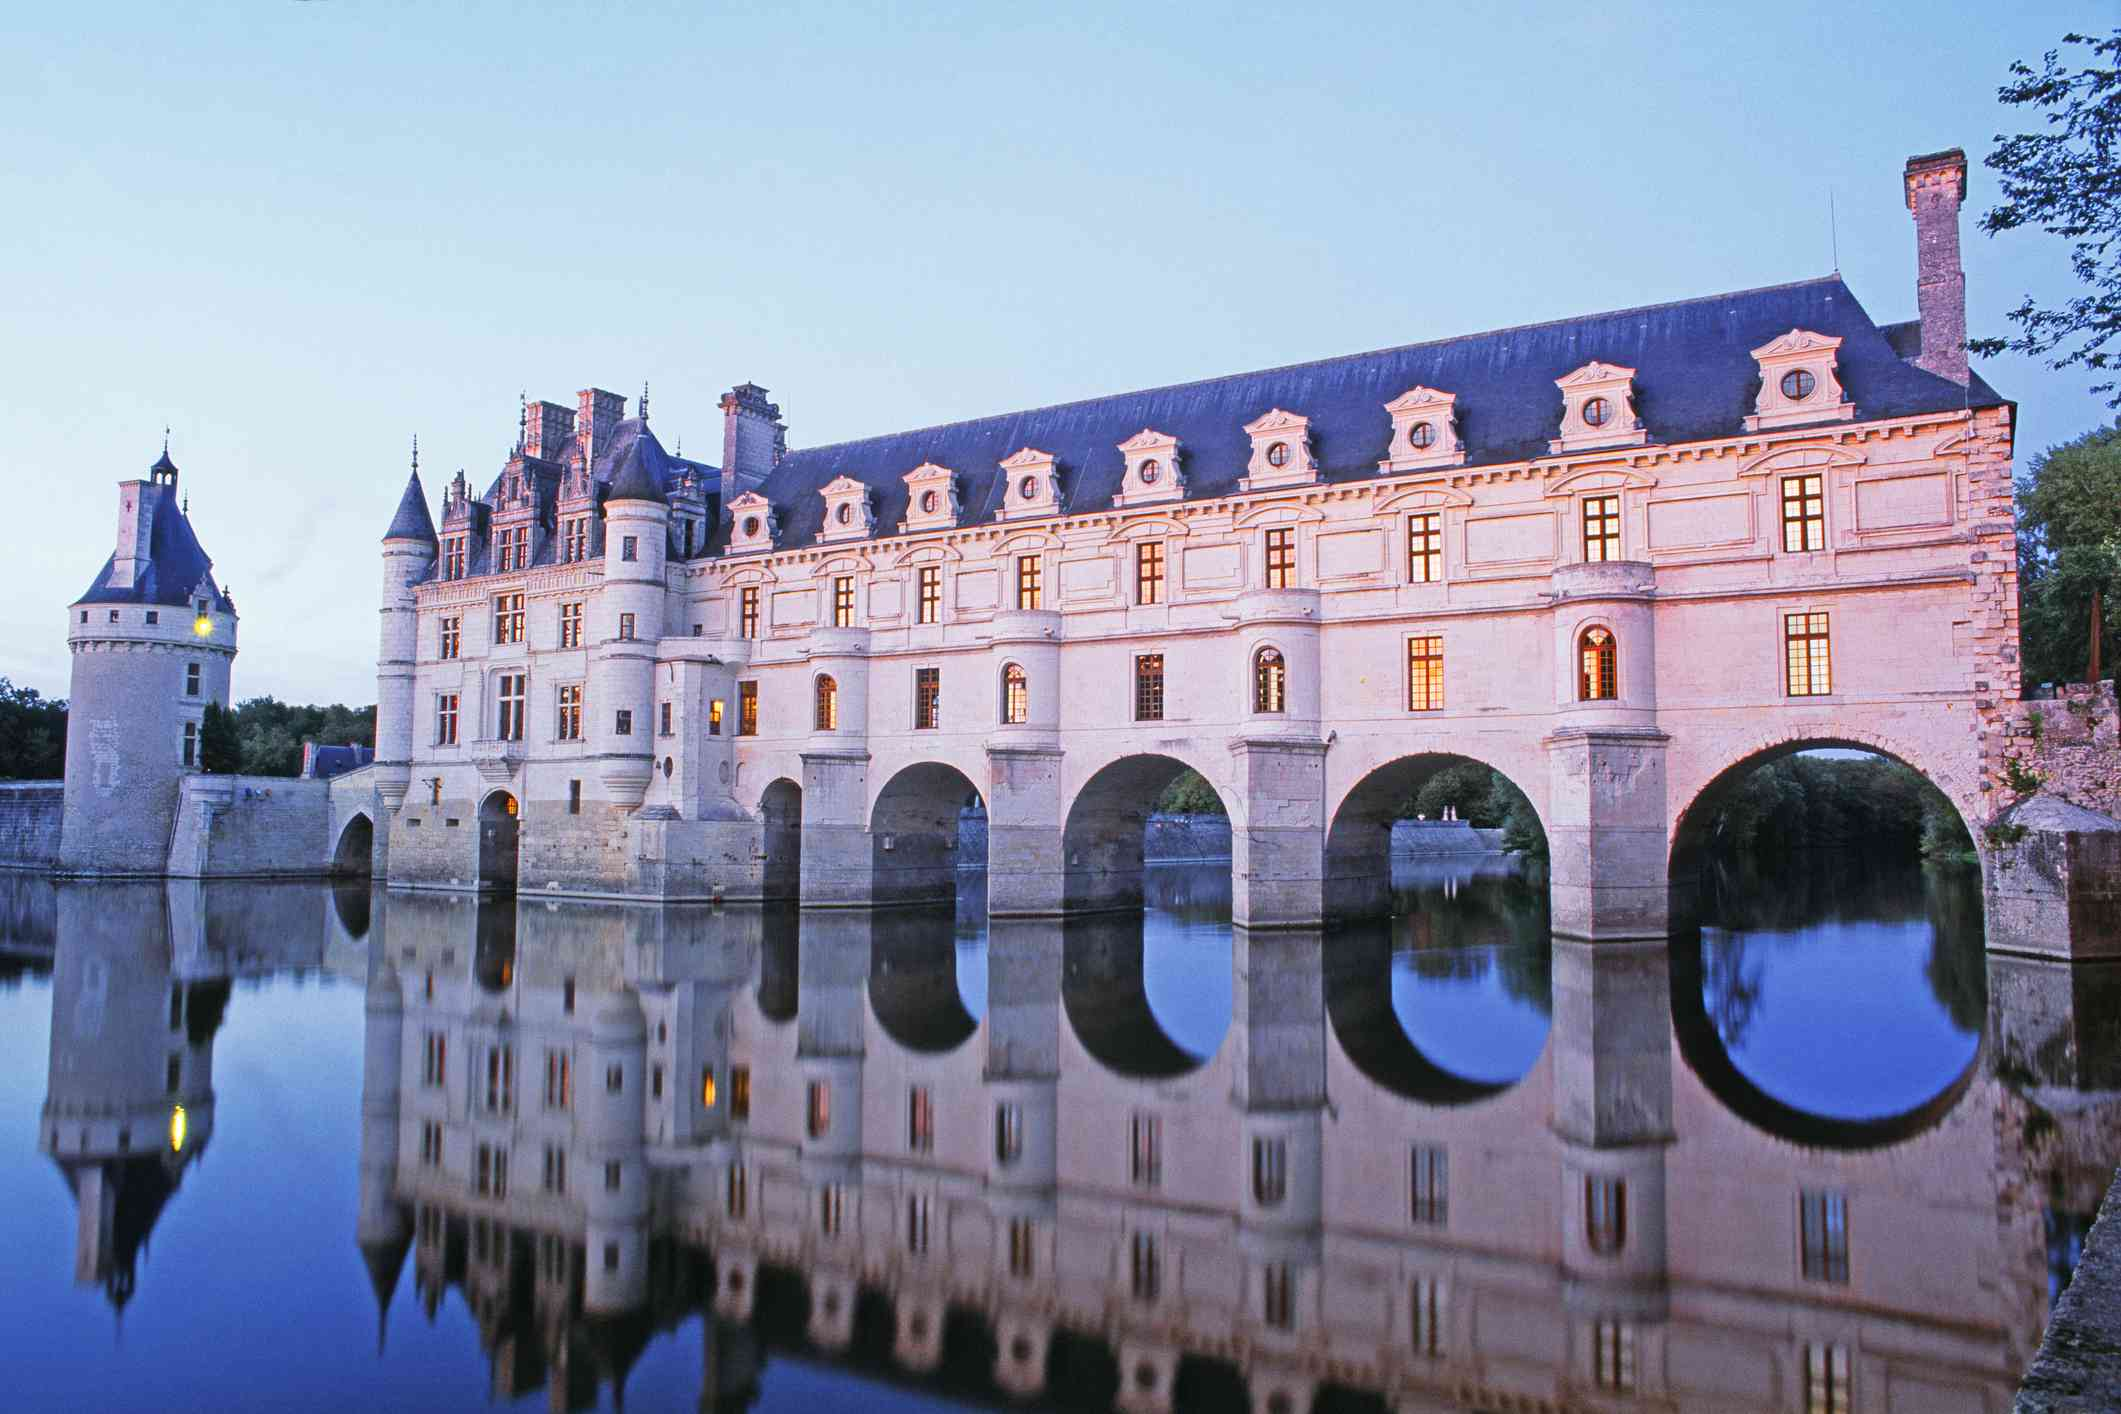 Château de Chenonceau on the River Cher under a clear blue sky at twilight